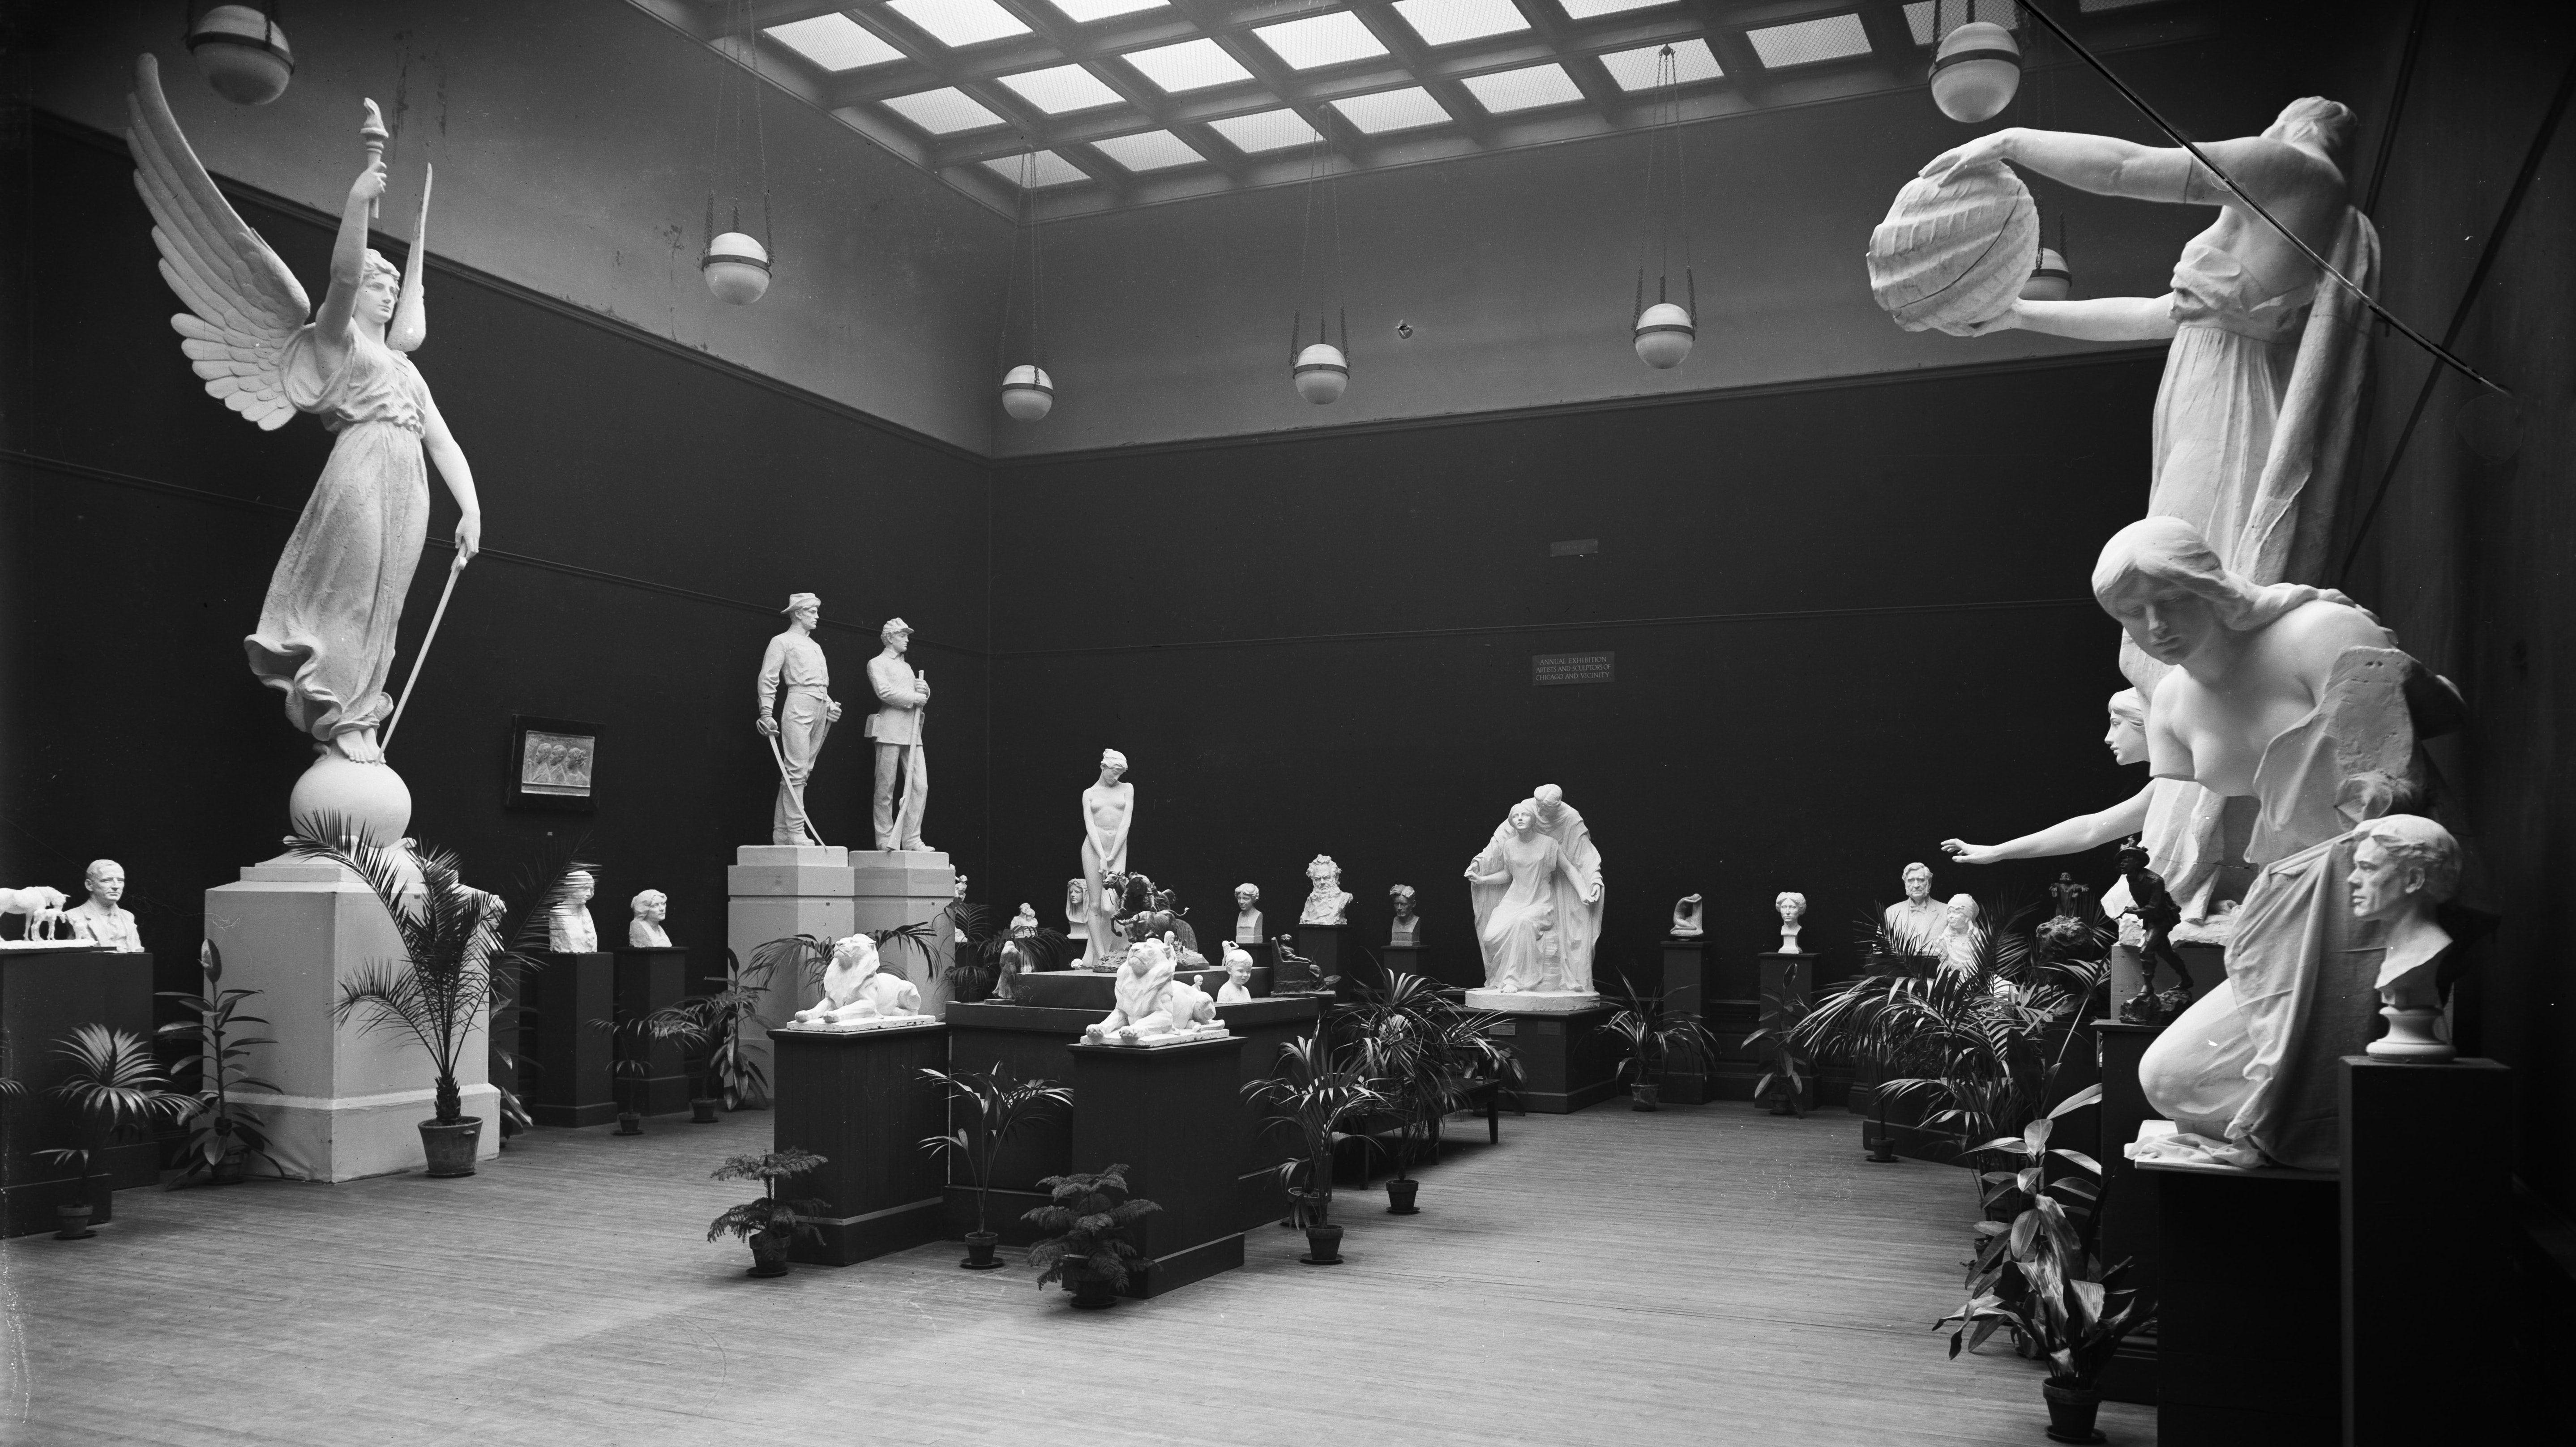 Archival image of an exhibition at the Art Institute